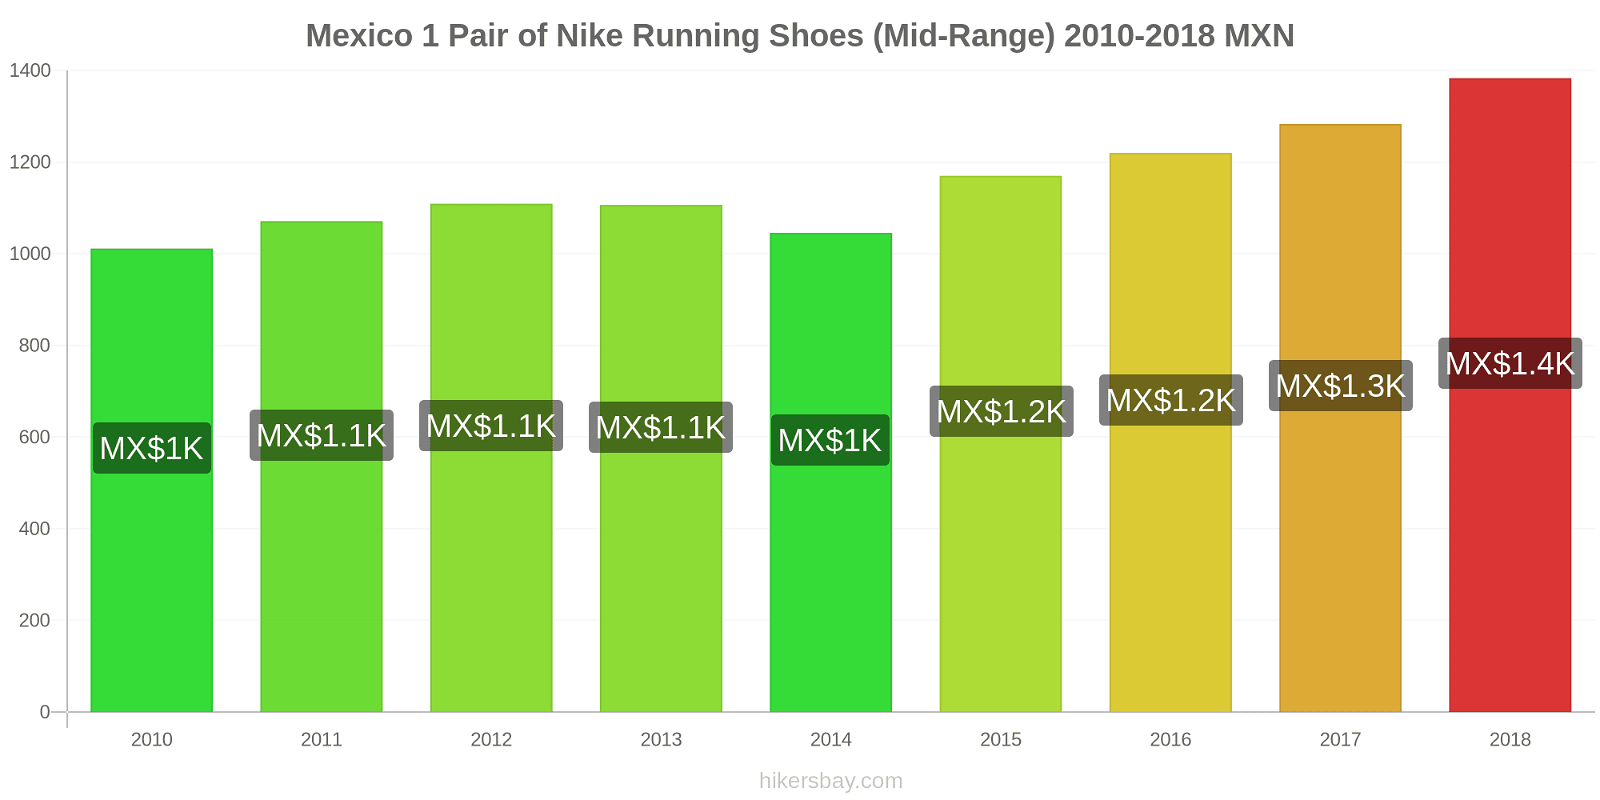 Mexico price changes 1 Pair of Nike Running Shoes (Mid-Range) hikersbay.com